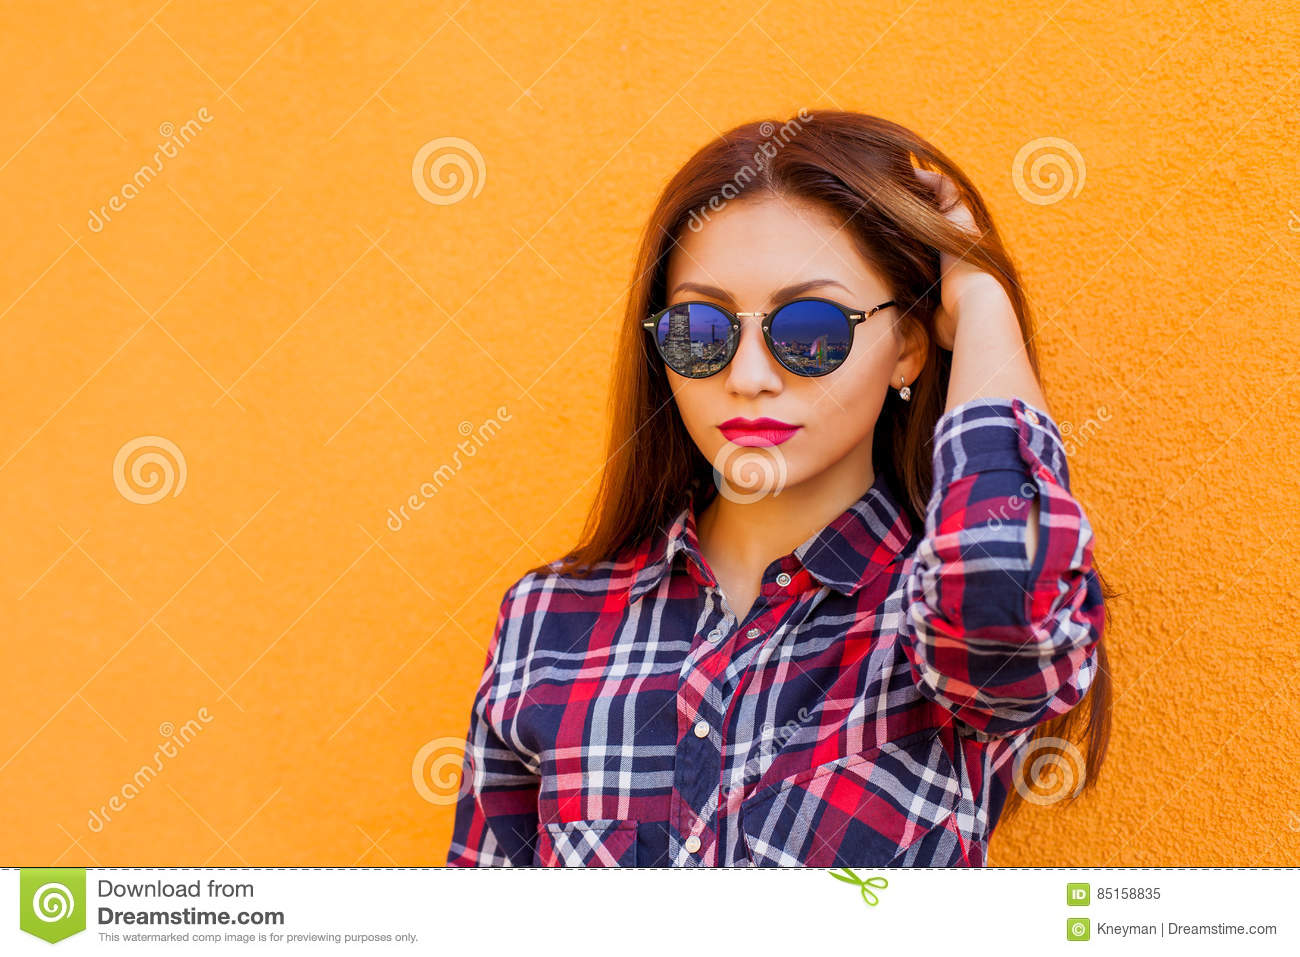 eba1ed799c Closeup portrait of beautiful woman with perfect make-up and sunglasses  with reflection